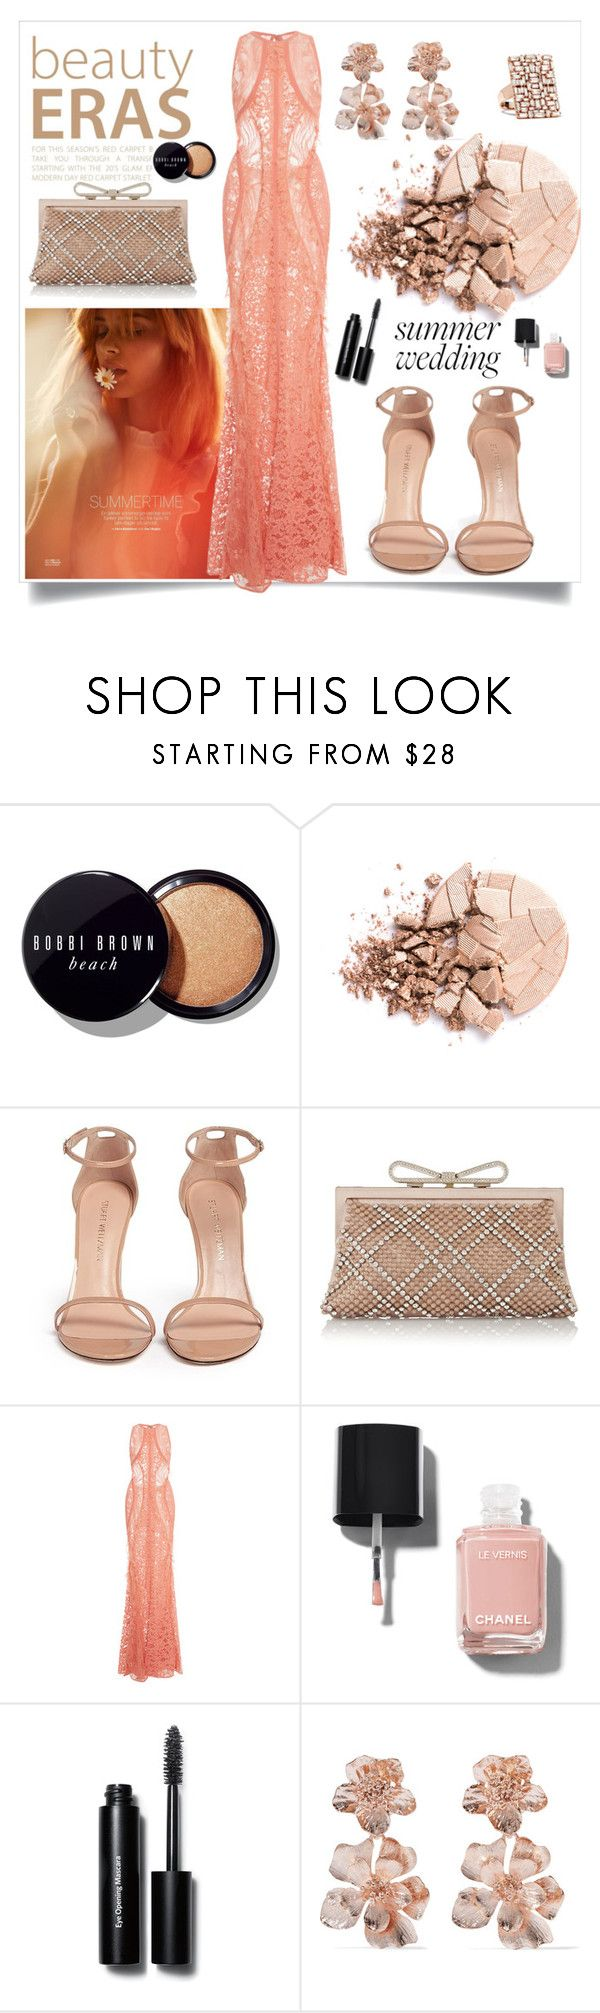 """Summer wedding"" by sarah-alam ❤ liked on Polyvore featuring Bobbi Brown Cosmetics, Anastasia Beverly Hills, Stuart Weitzman, Valentino, Elie Saab, Chanel, Oscar de la Renta and Suzanne Kalan"